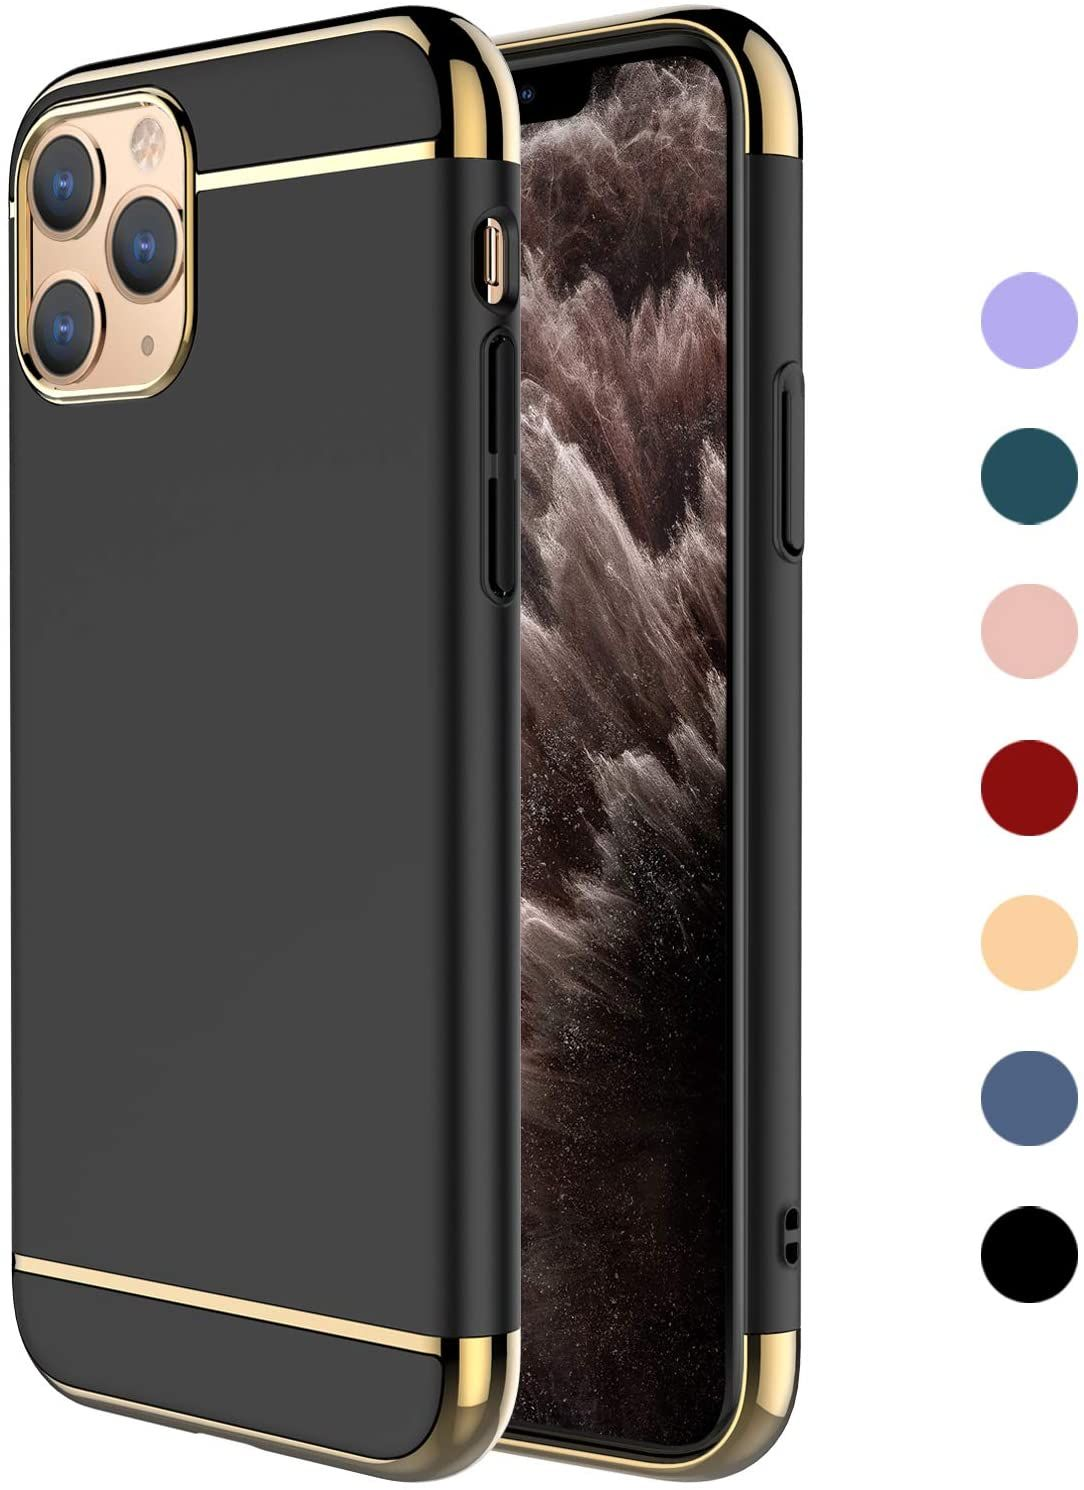 Iphone 11 Pro Max Case 3 In 1 Ultra Thin And Slim Hard Case Coated Non Slip Matte Surface Iphone Iphone 11 Apple Iphone